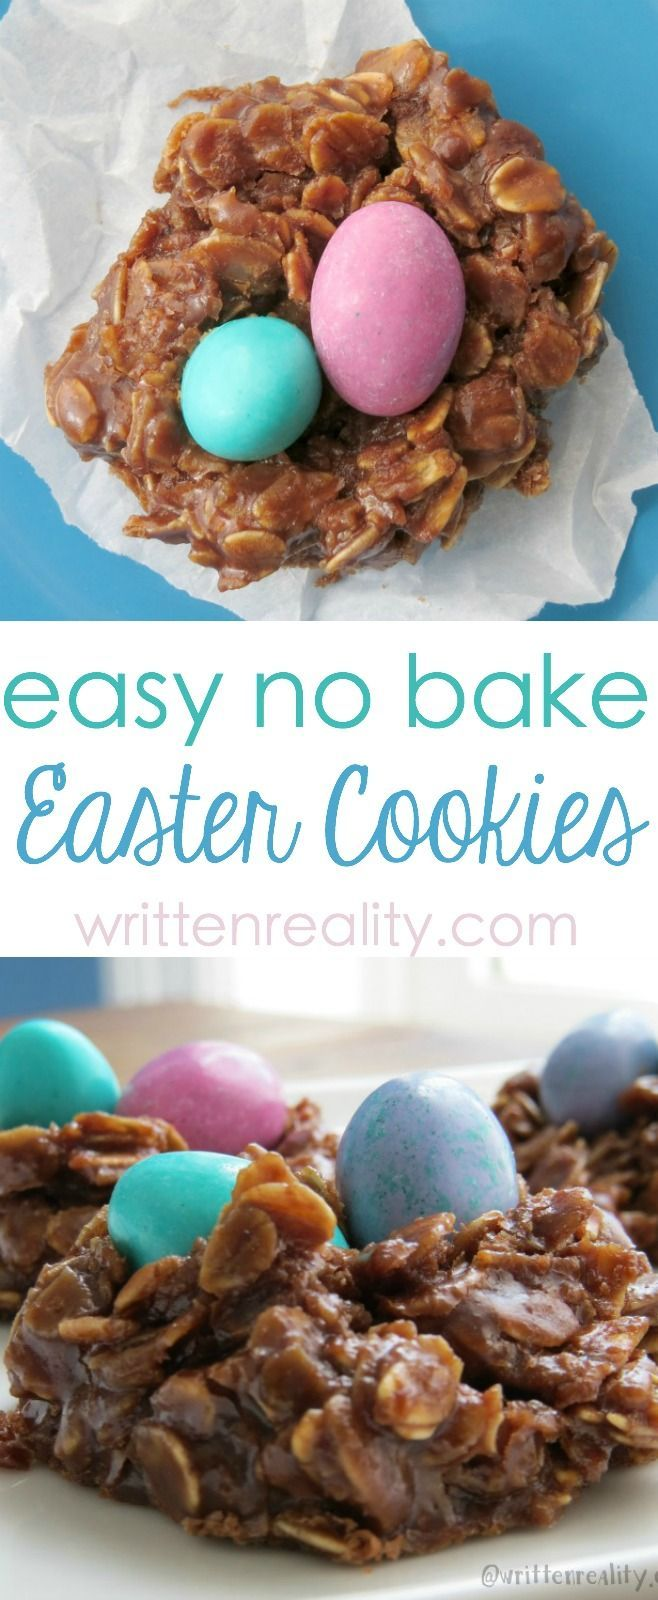 349 best resurrection day images on pinterest hoppy easter 349 best resurrection day images on pinterest hoppy easter easter food and easter ideas negle Gallery